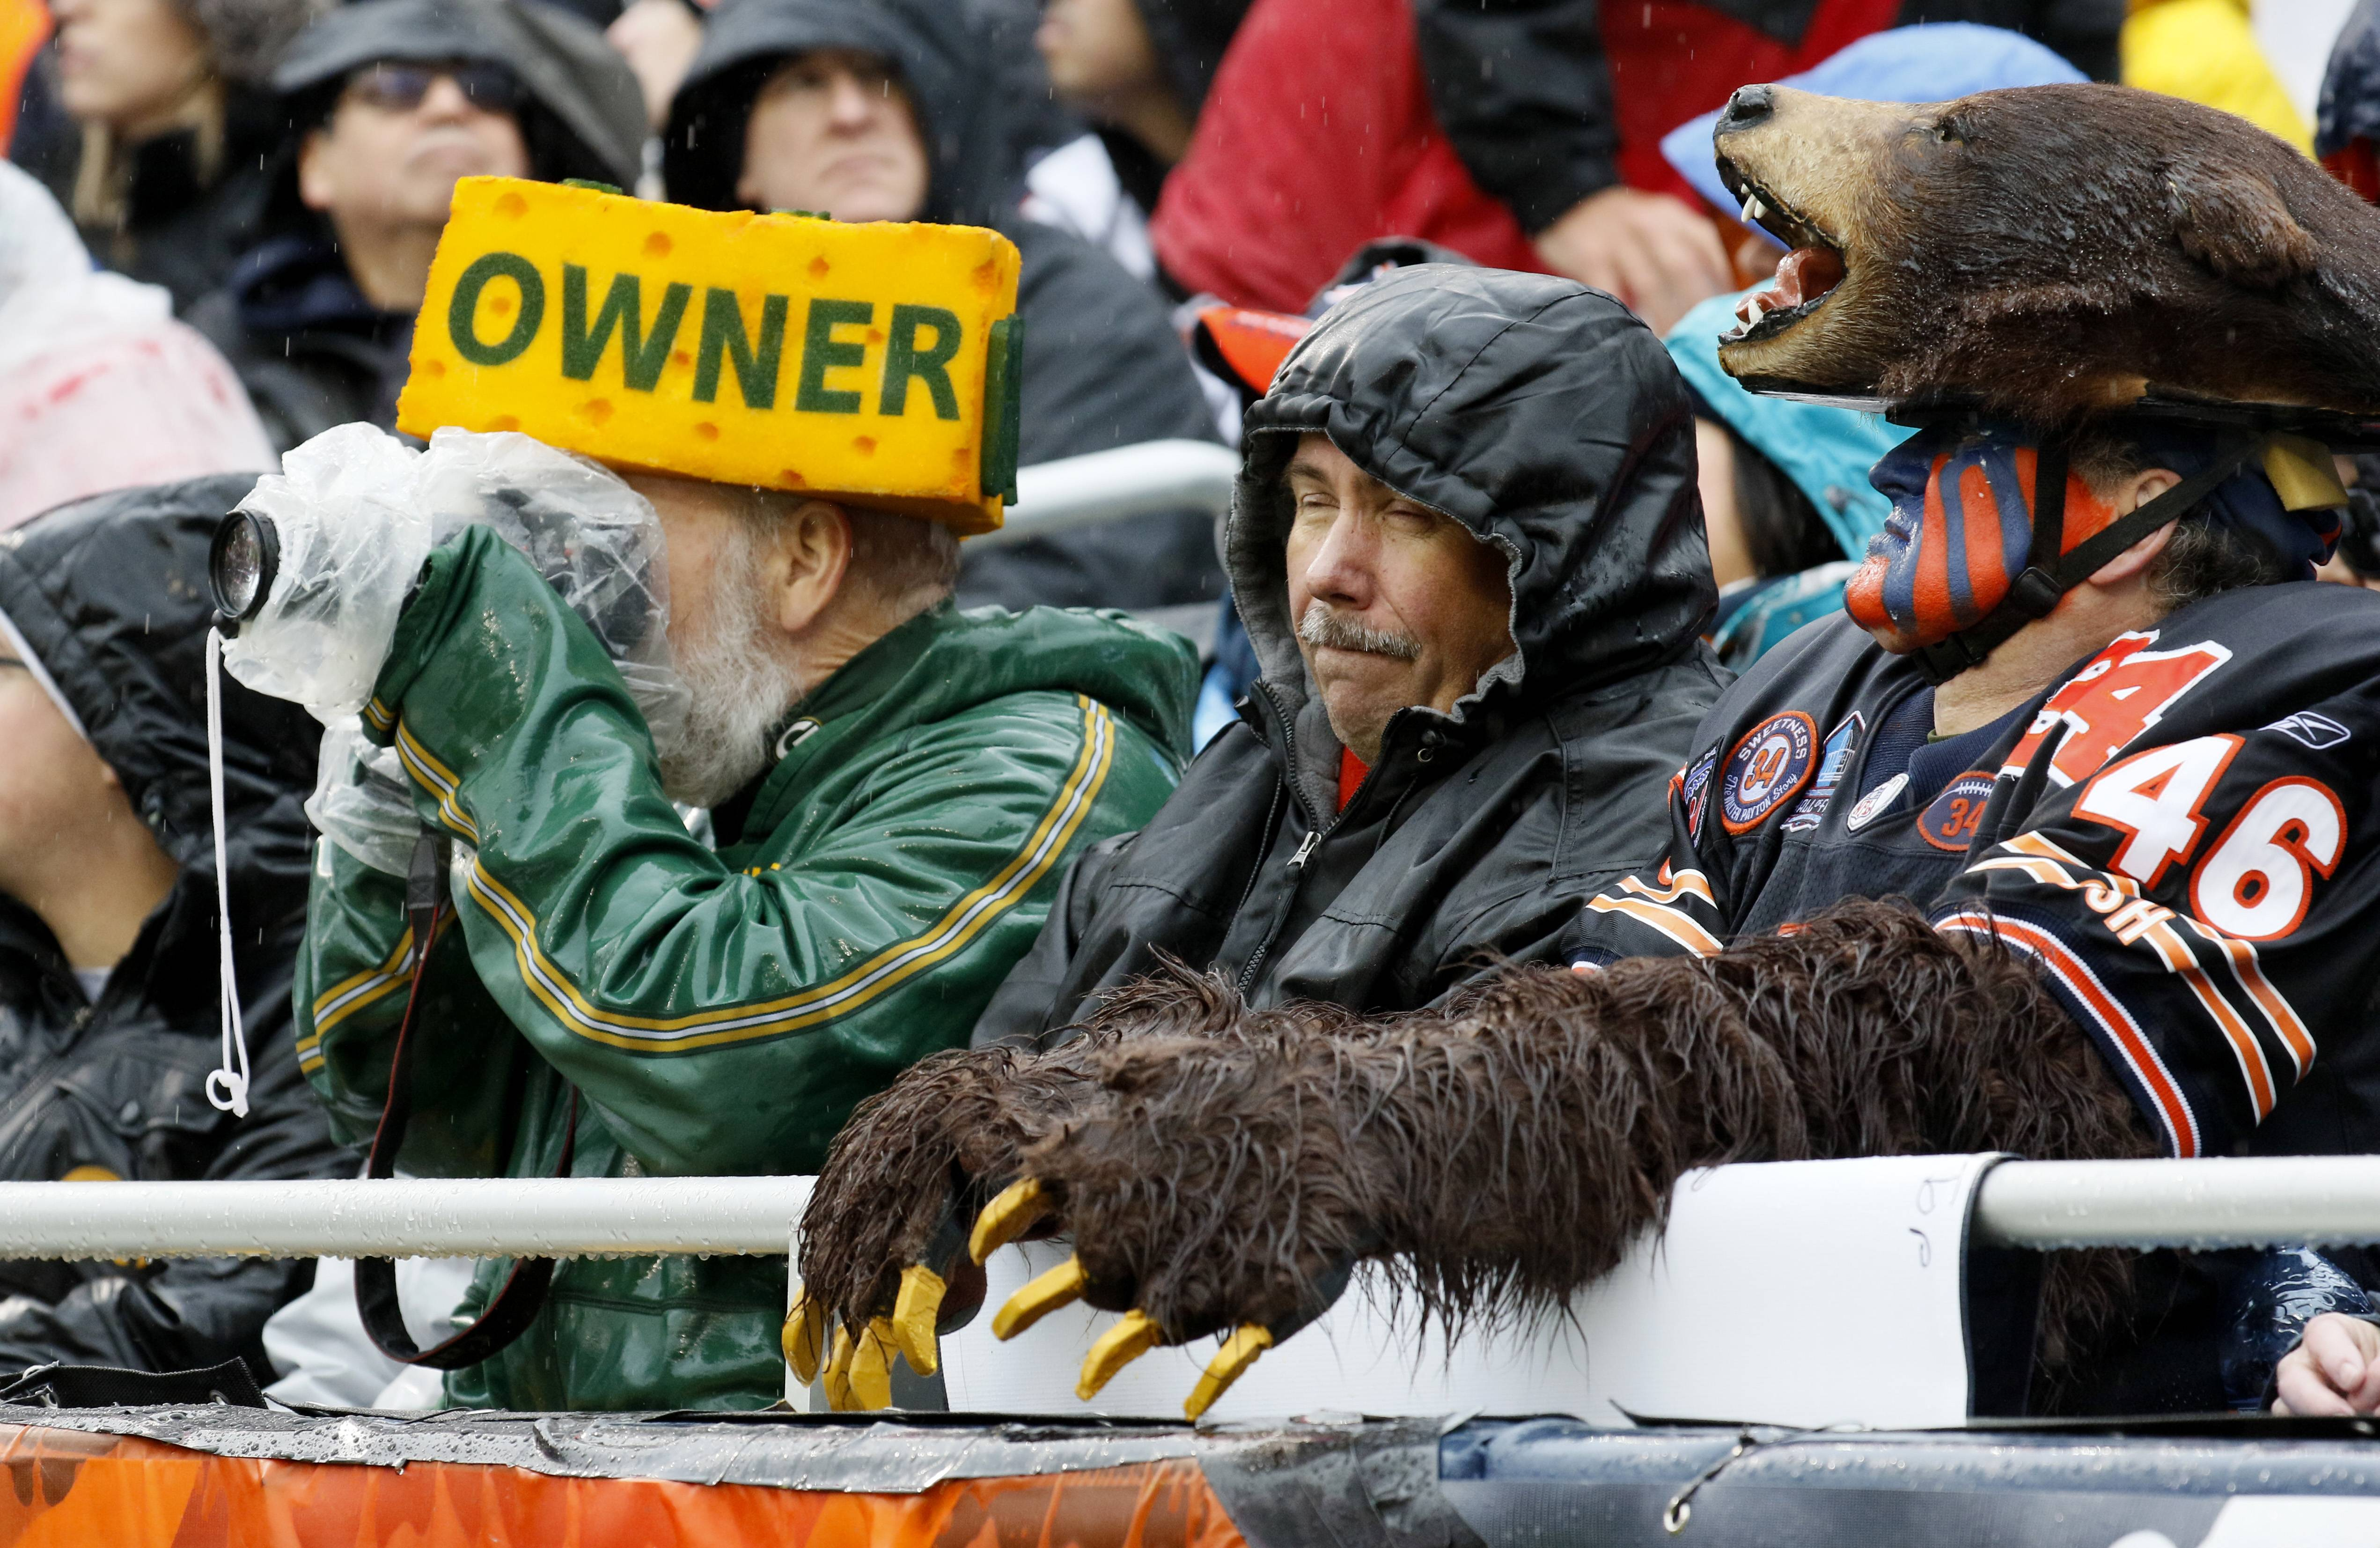 Chicago Bears and Green Bay Packers fans brave the rain, November 12, 2017, at Soldier Field.